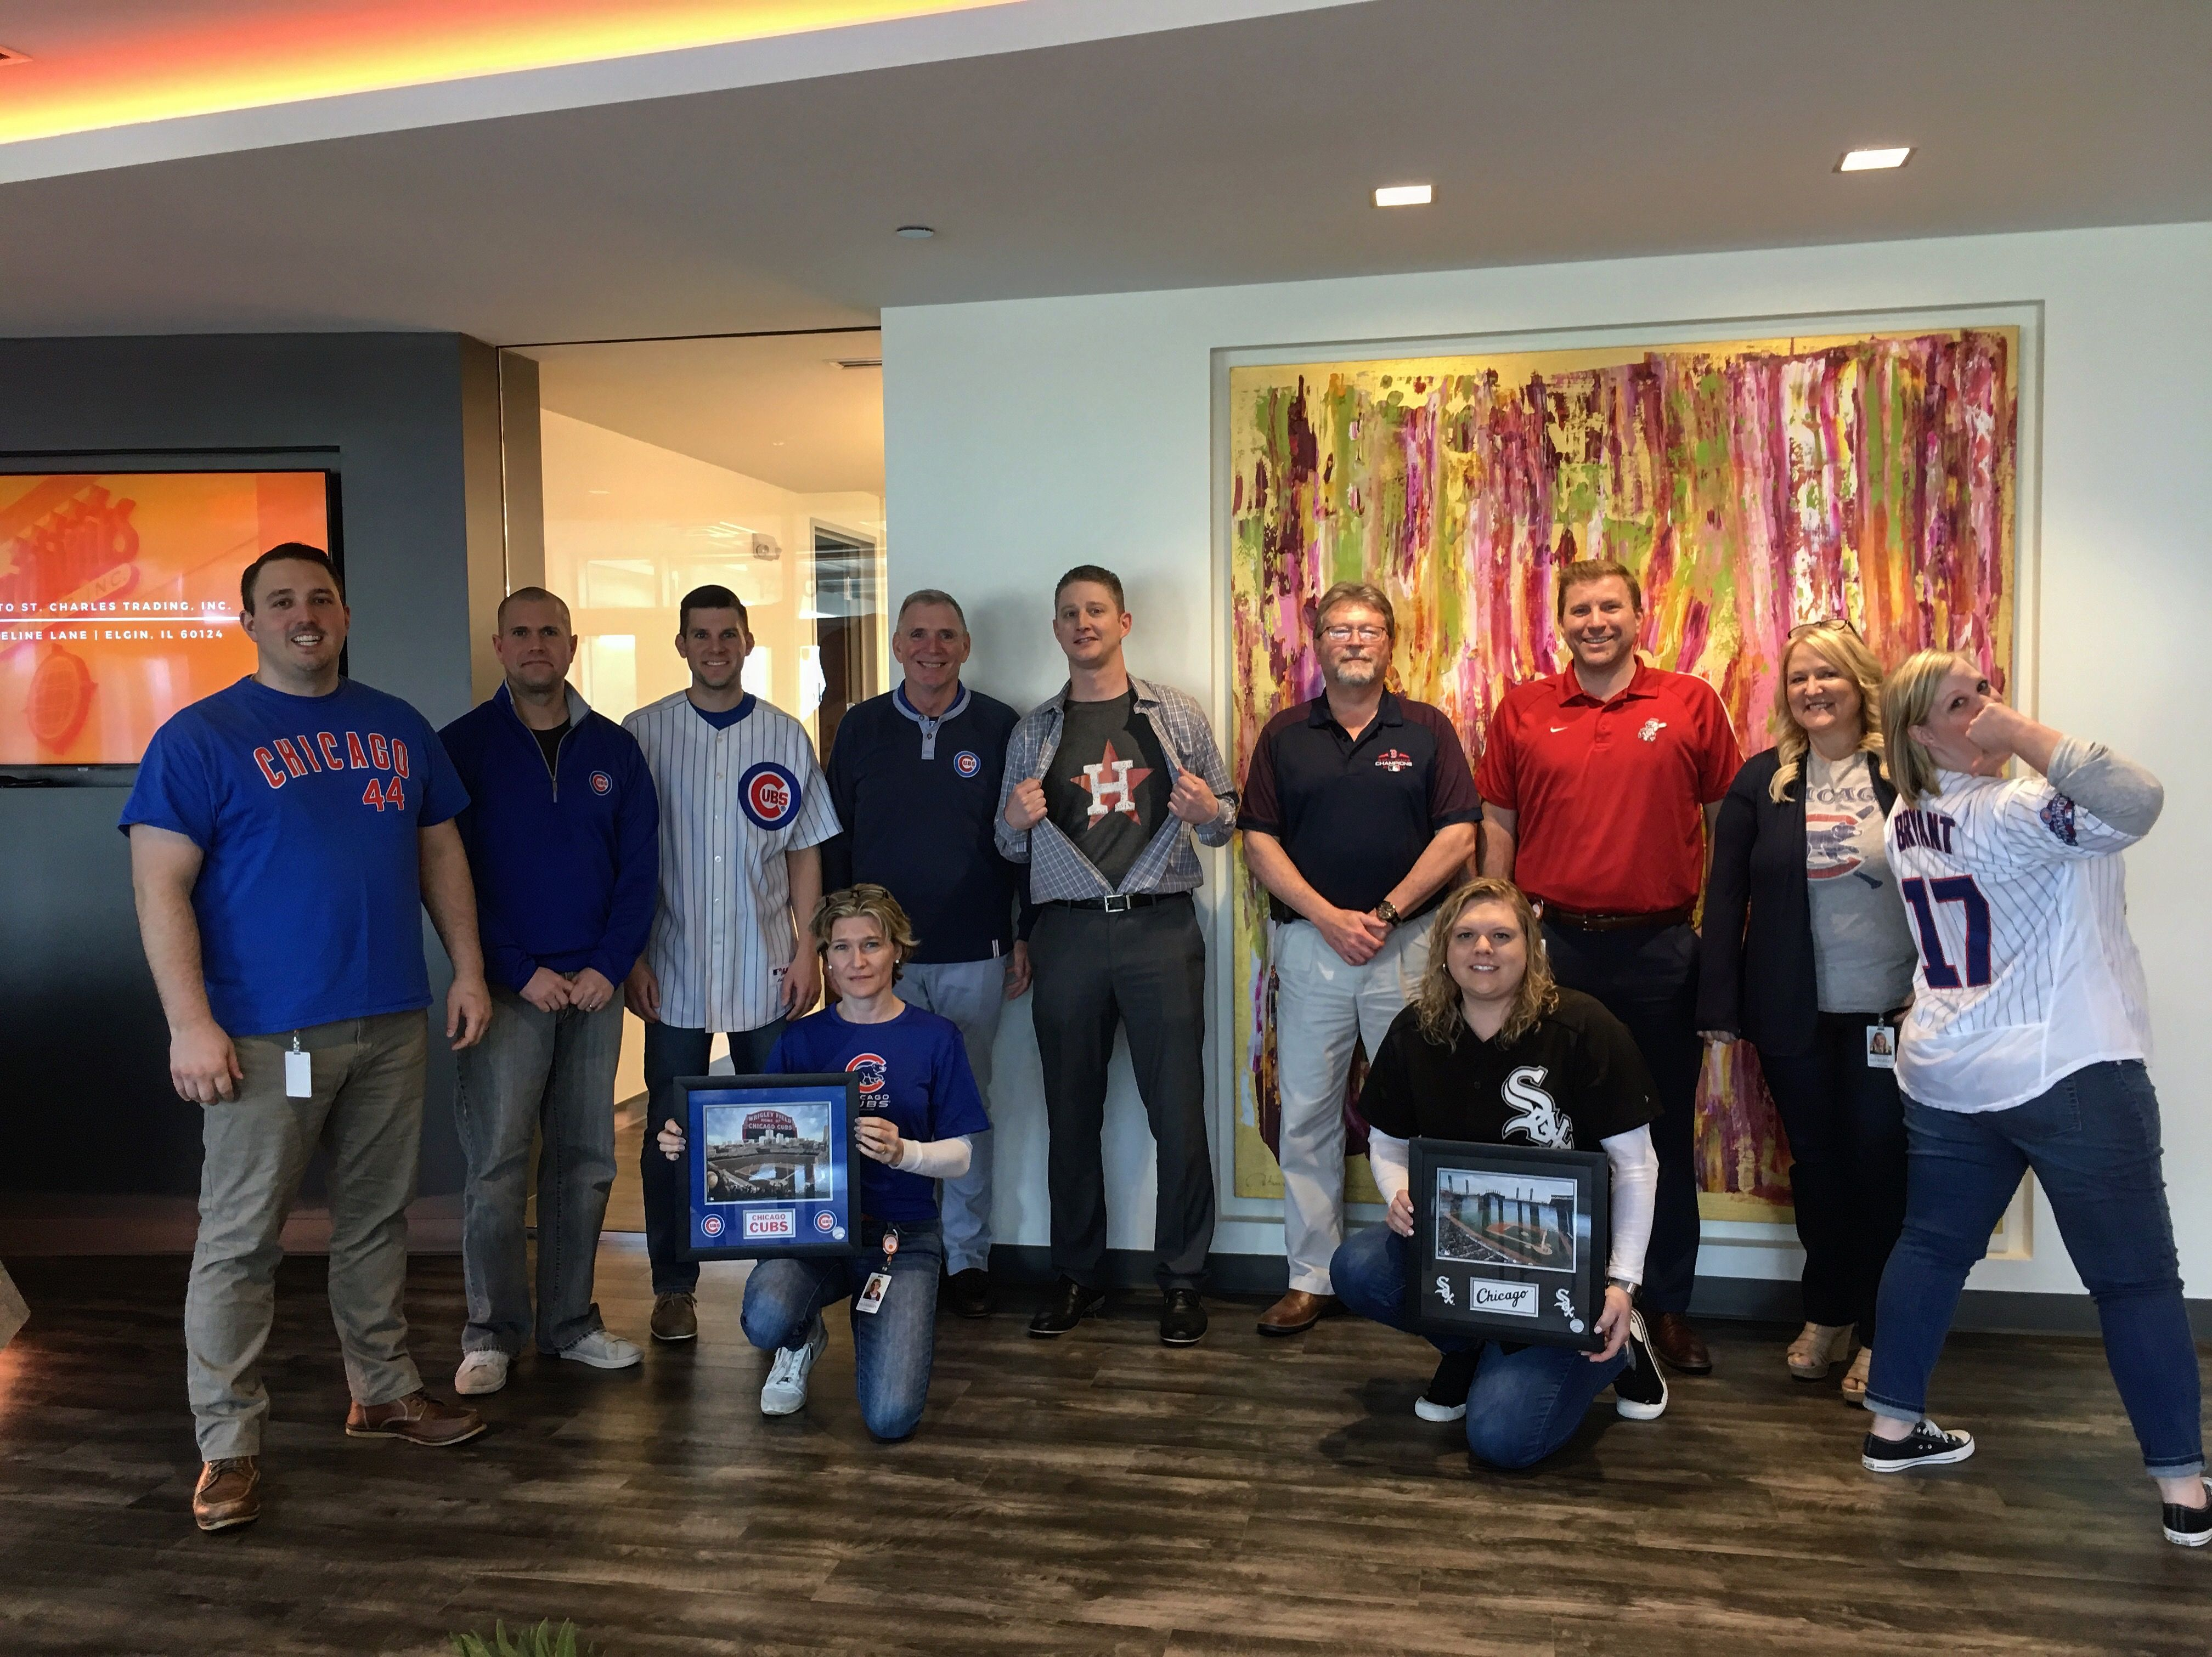 Opening Day 2019 Global Supply Chain Management Employee Engagement Employee Appreciation